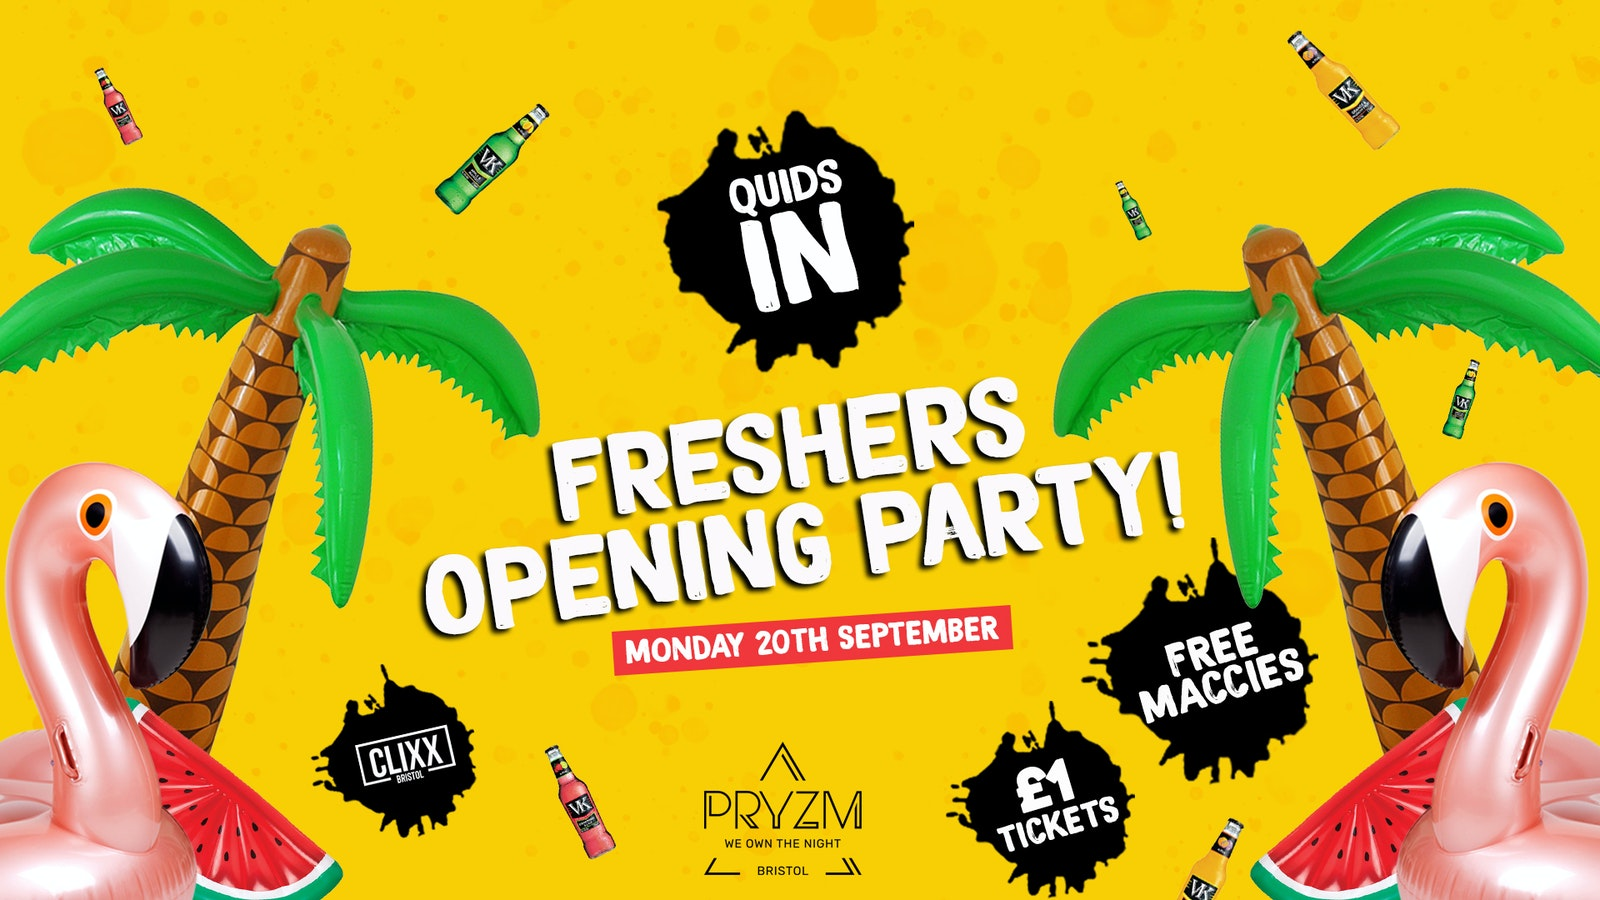 QUIDS IN / Freshers Opening Party – £1 Tickets